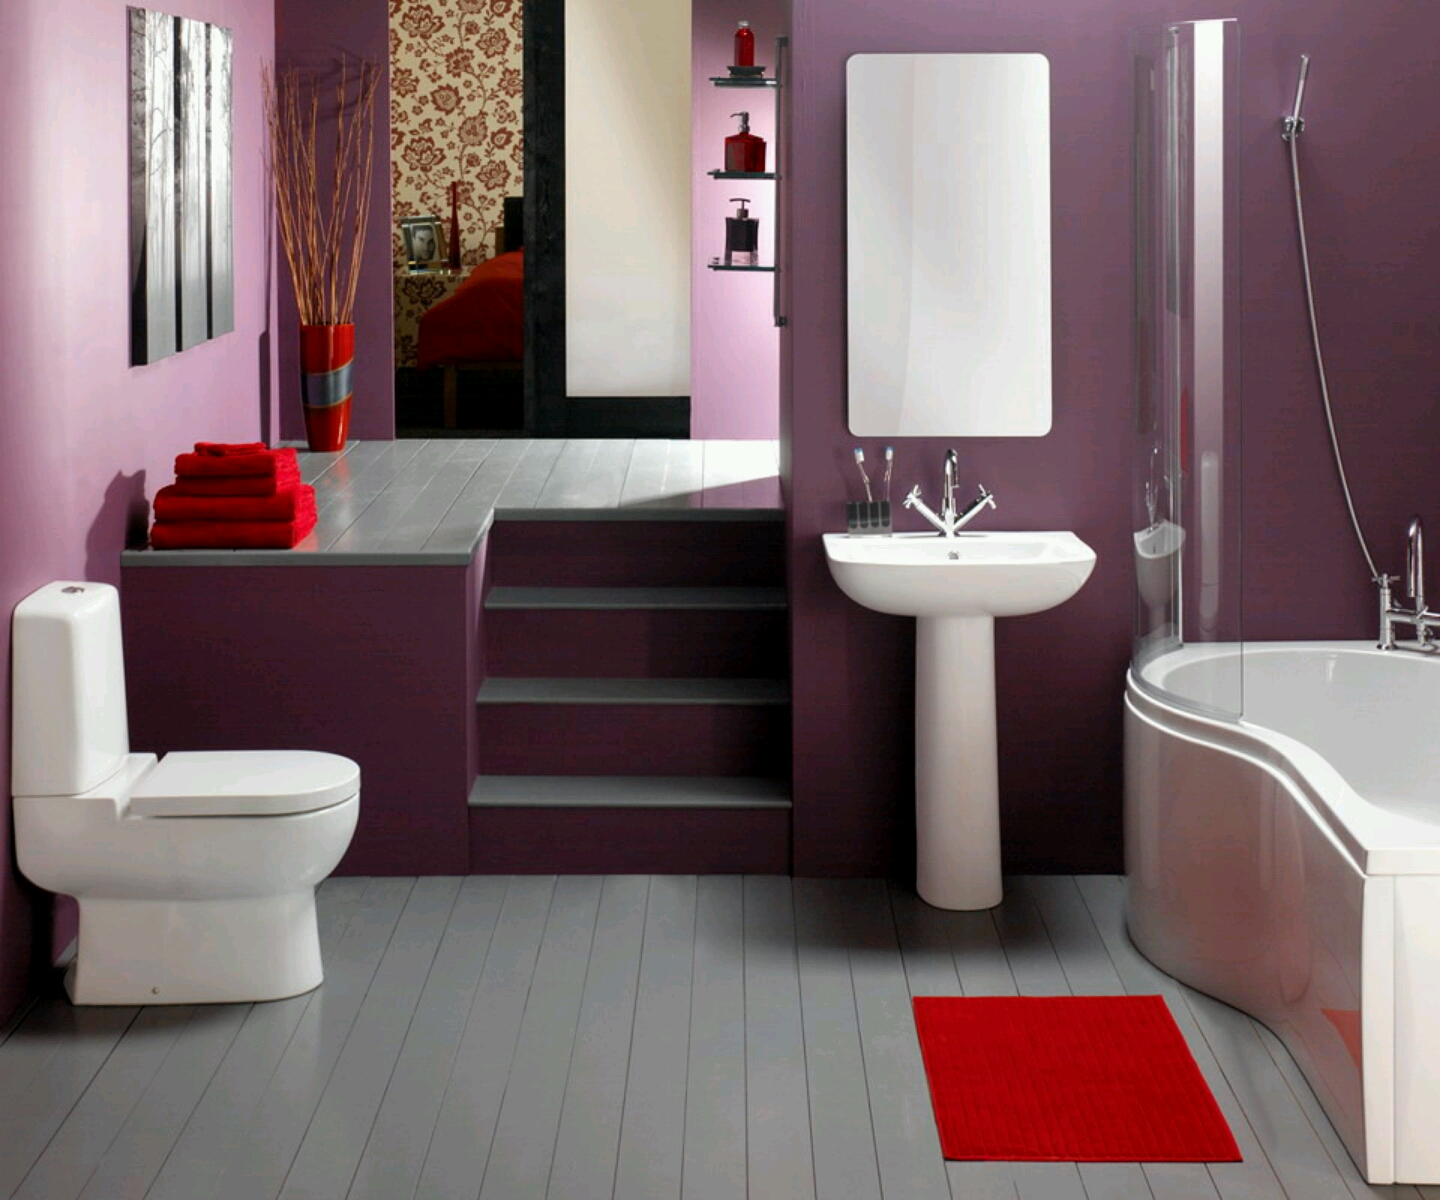 New home designs latest luxury modern bathrooms designs for Small luxury bathrooms ideas